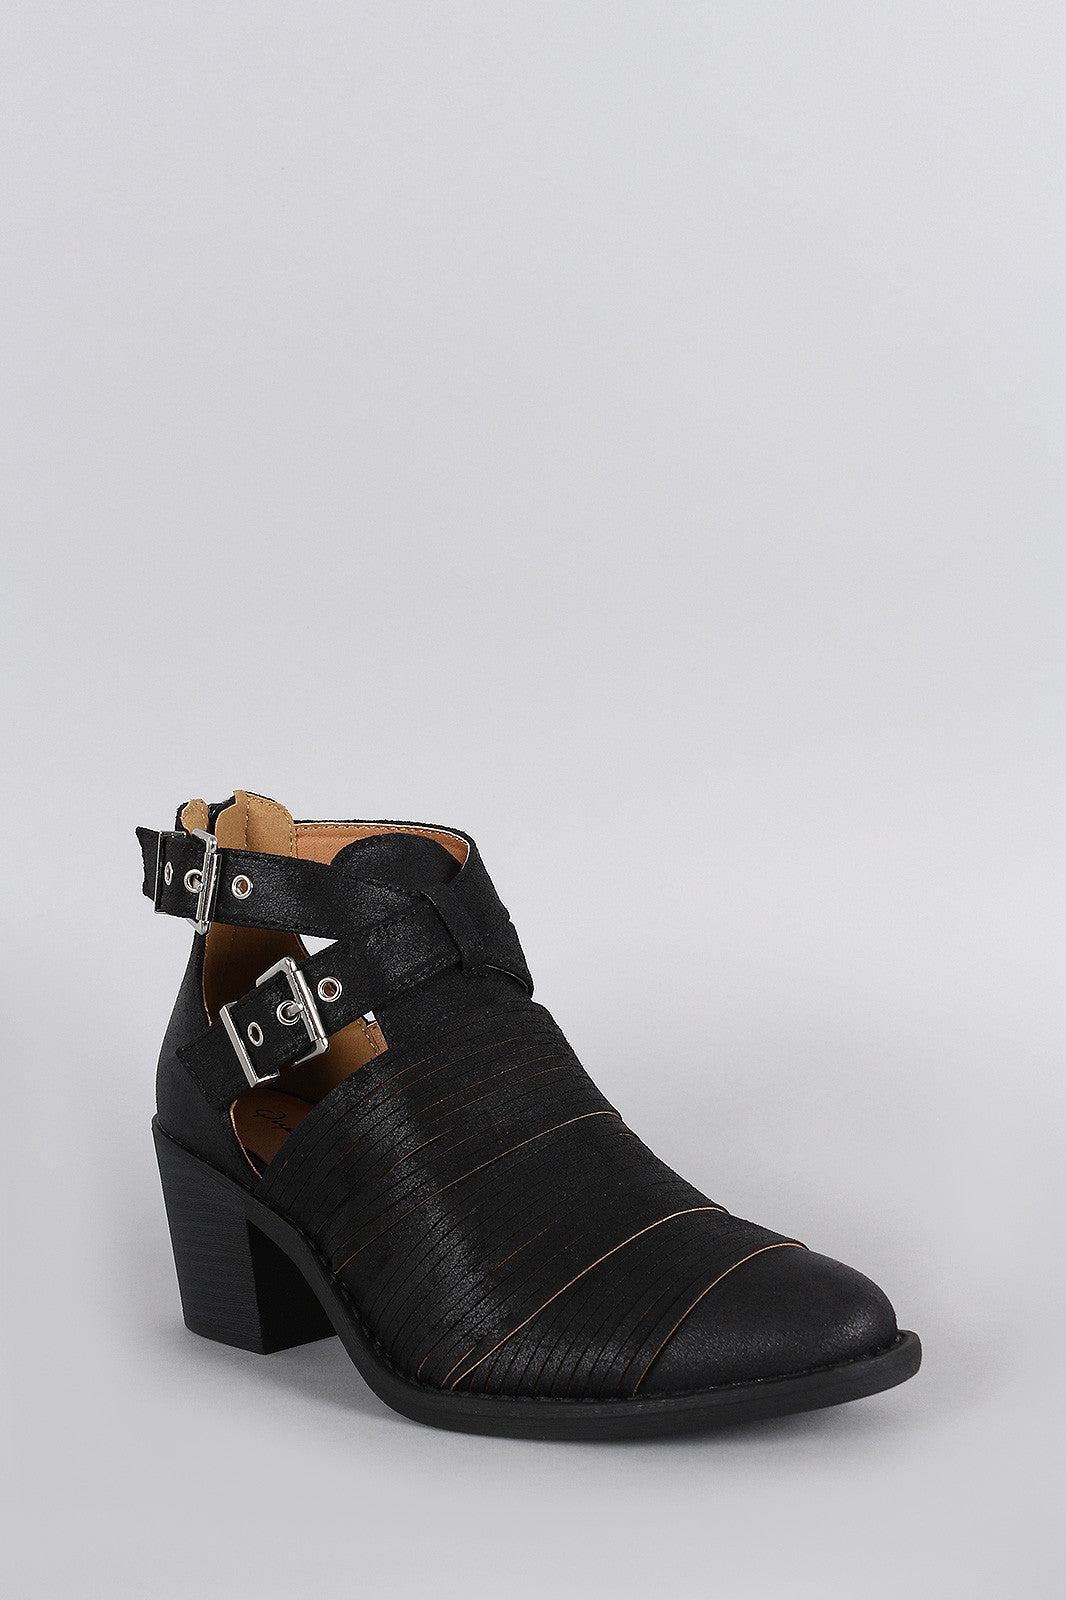 Qupid Slashed Crisscross Buckled Strap Chunky Heeled Ankle Boots - Thick 'N' Curvy Shop - 5